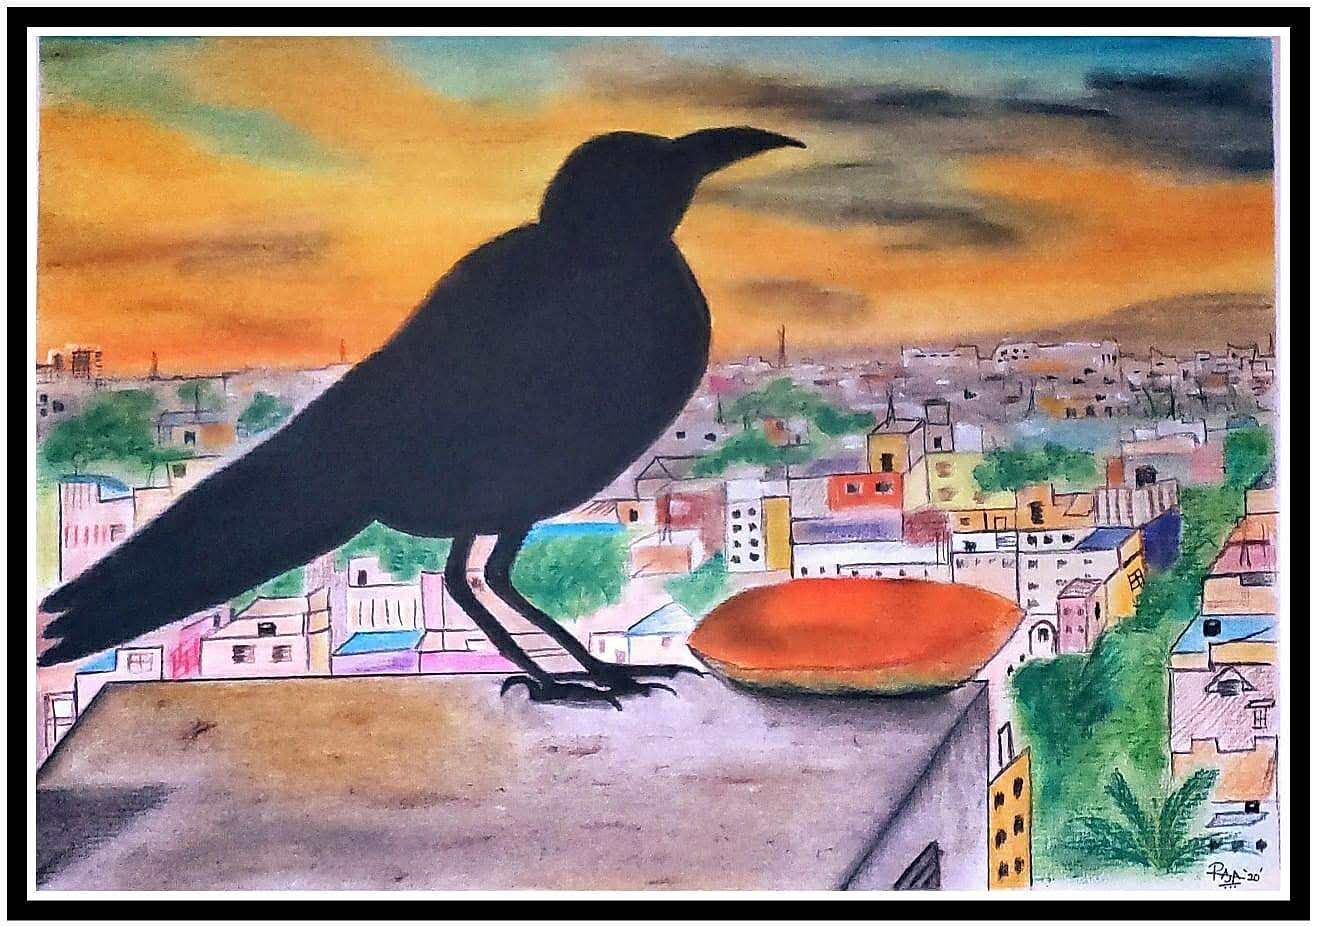 Blacky the crow in soft pastel